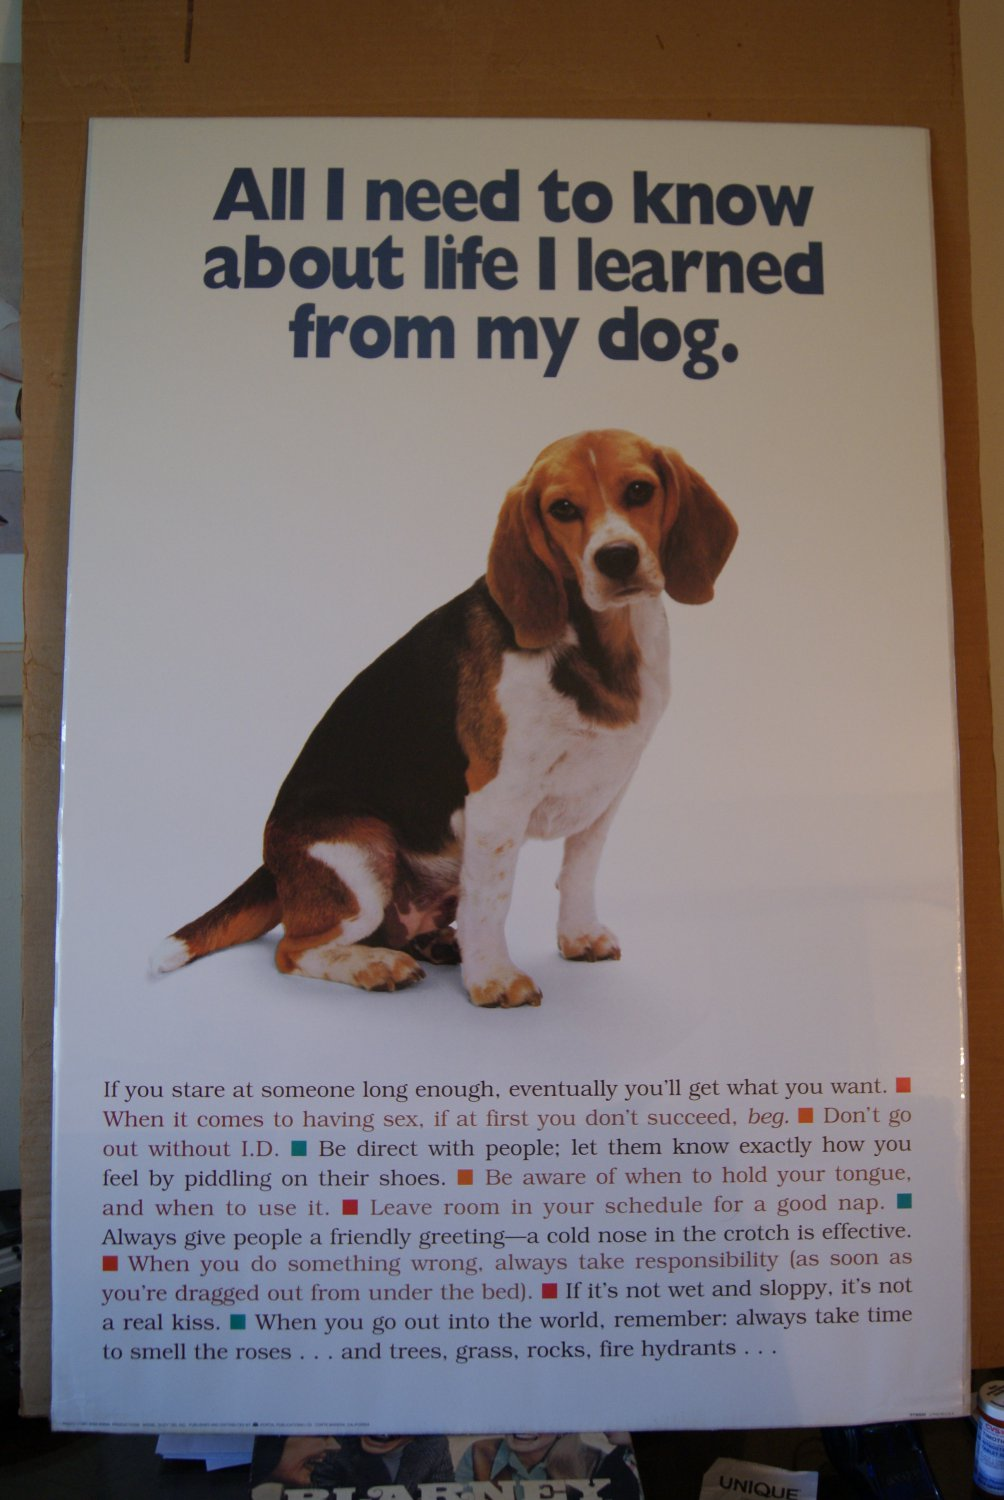 All I need to know about life I learned from my dog poster